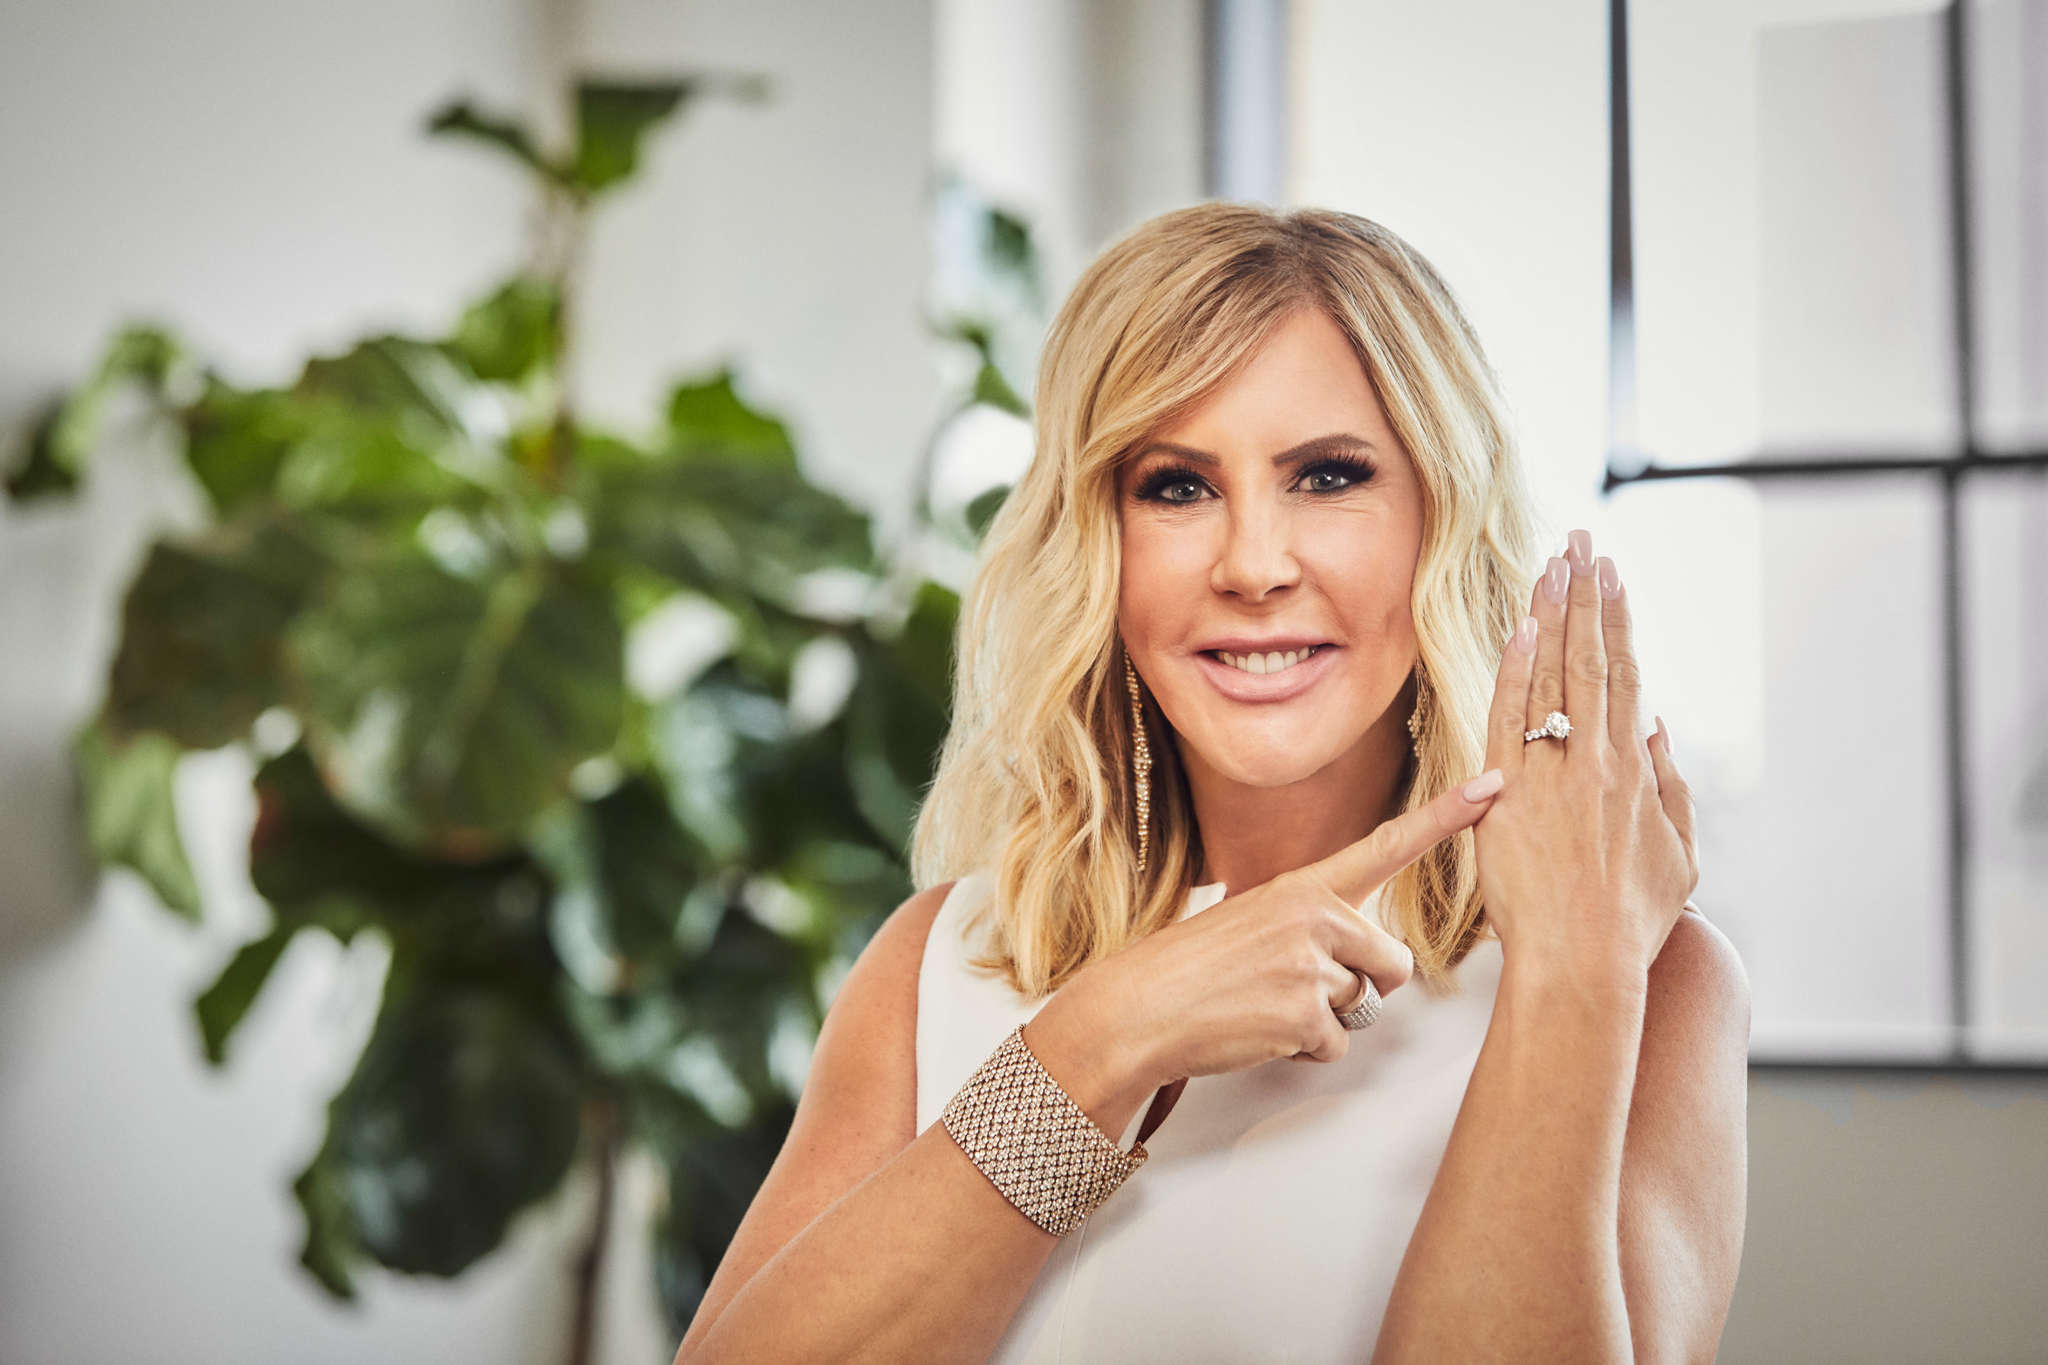 Vicki Gunvalson Will Not Return to The Real Housewives of Orange County